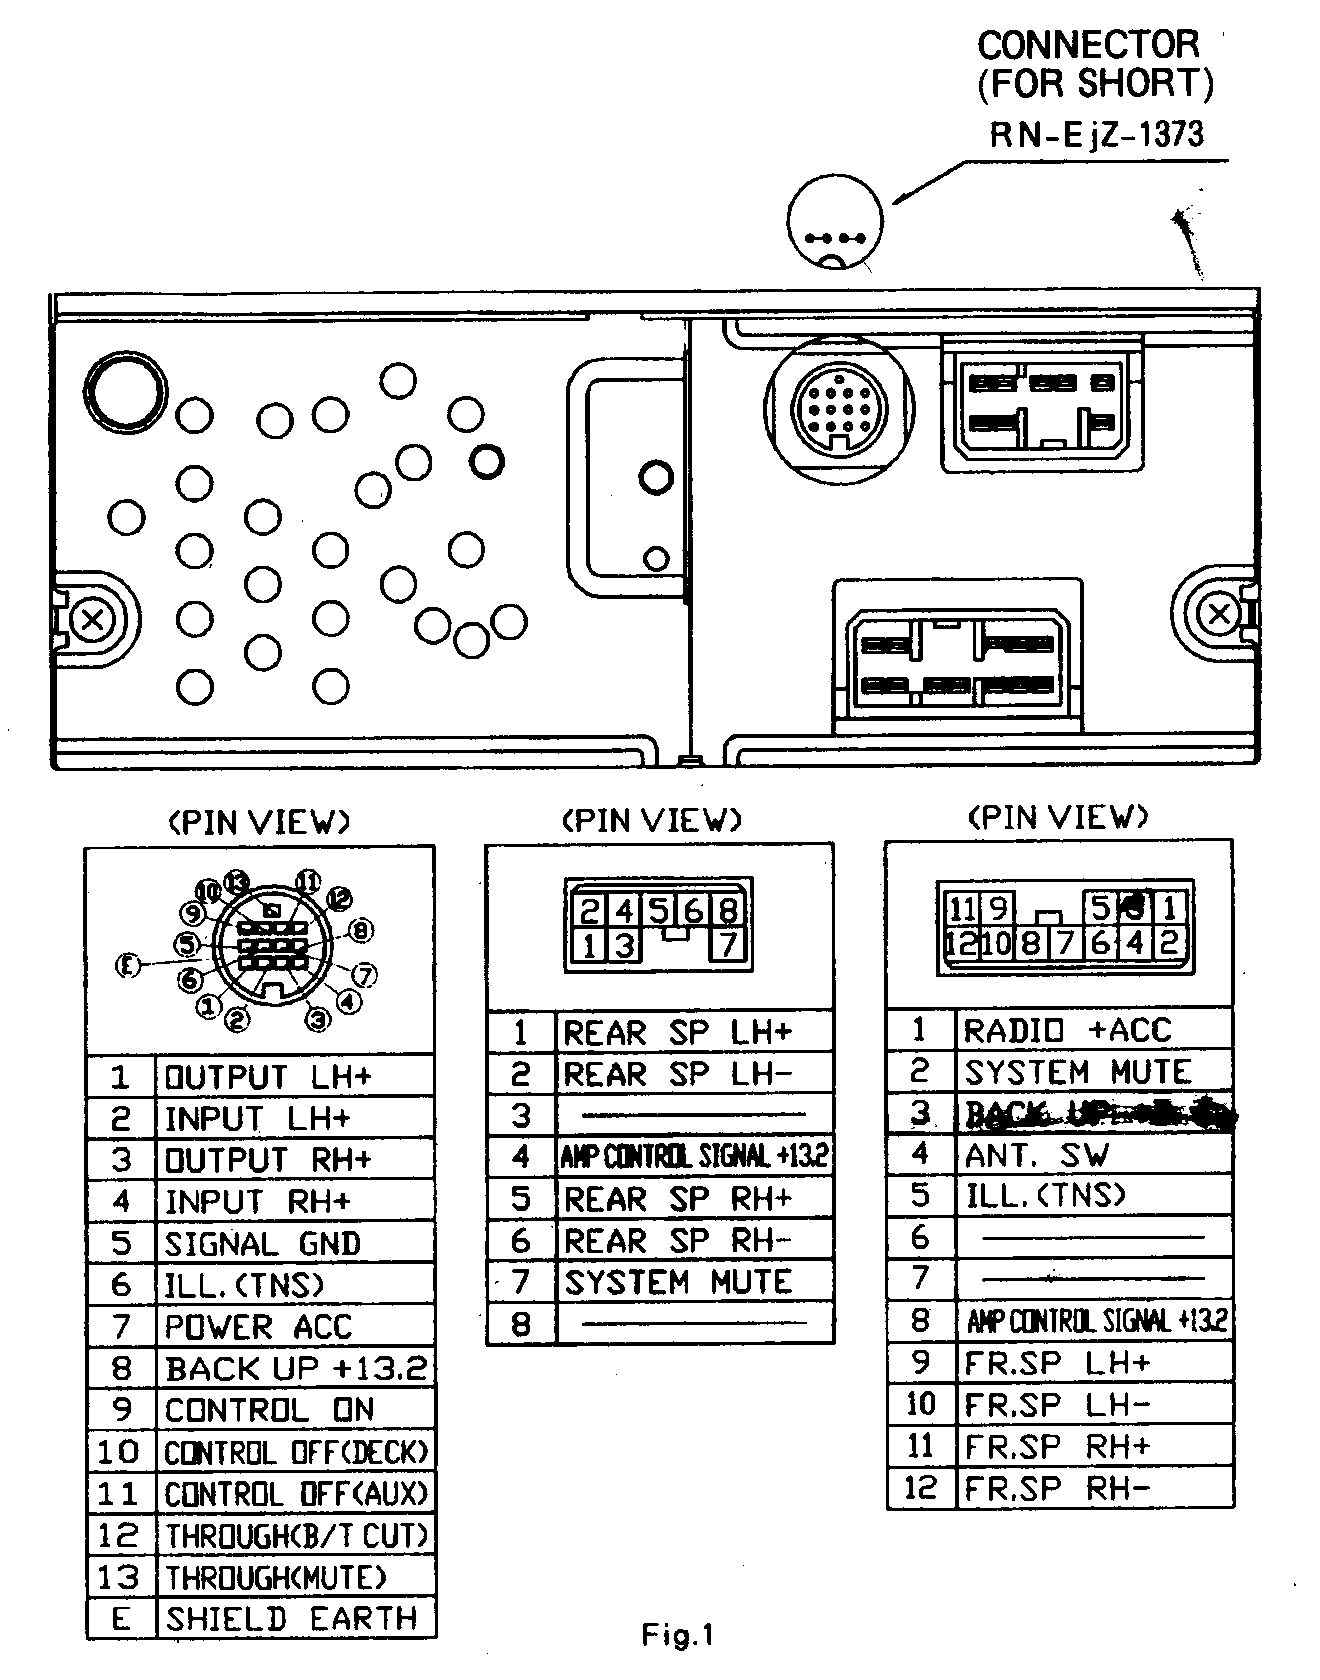 Mazda Car Radio Wiring Connector on Mazda Bose Stereo Wiring Diagram